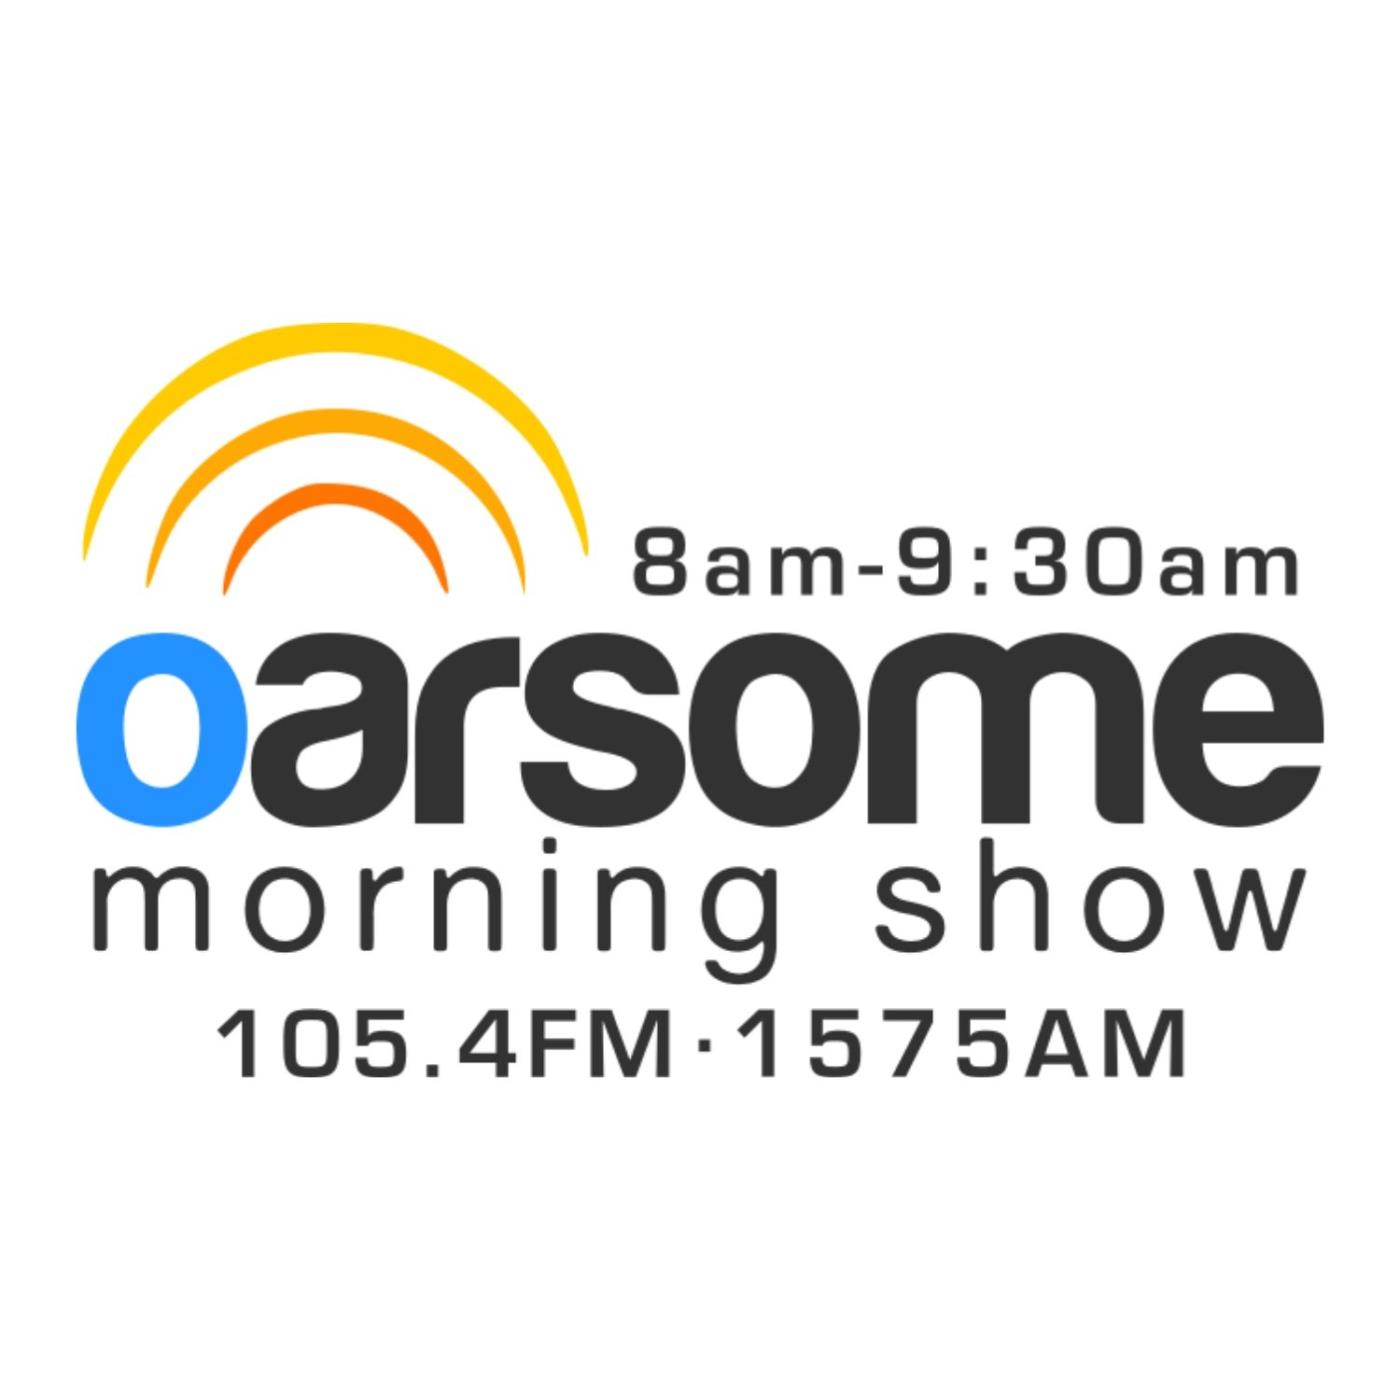 OARsome Morning Show - 28-01-2021 - Fairfield Dead Rockers Ball - Silas Waring